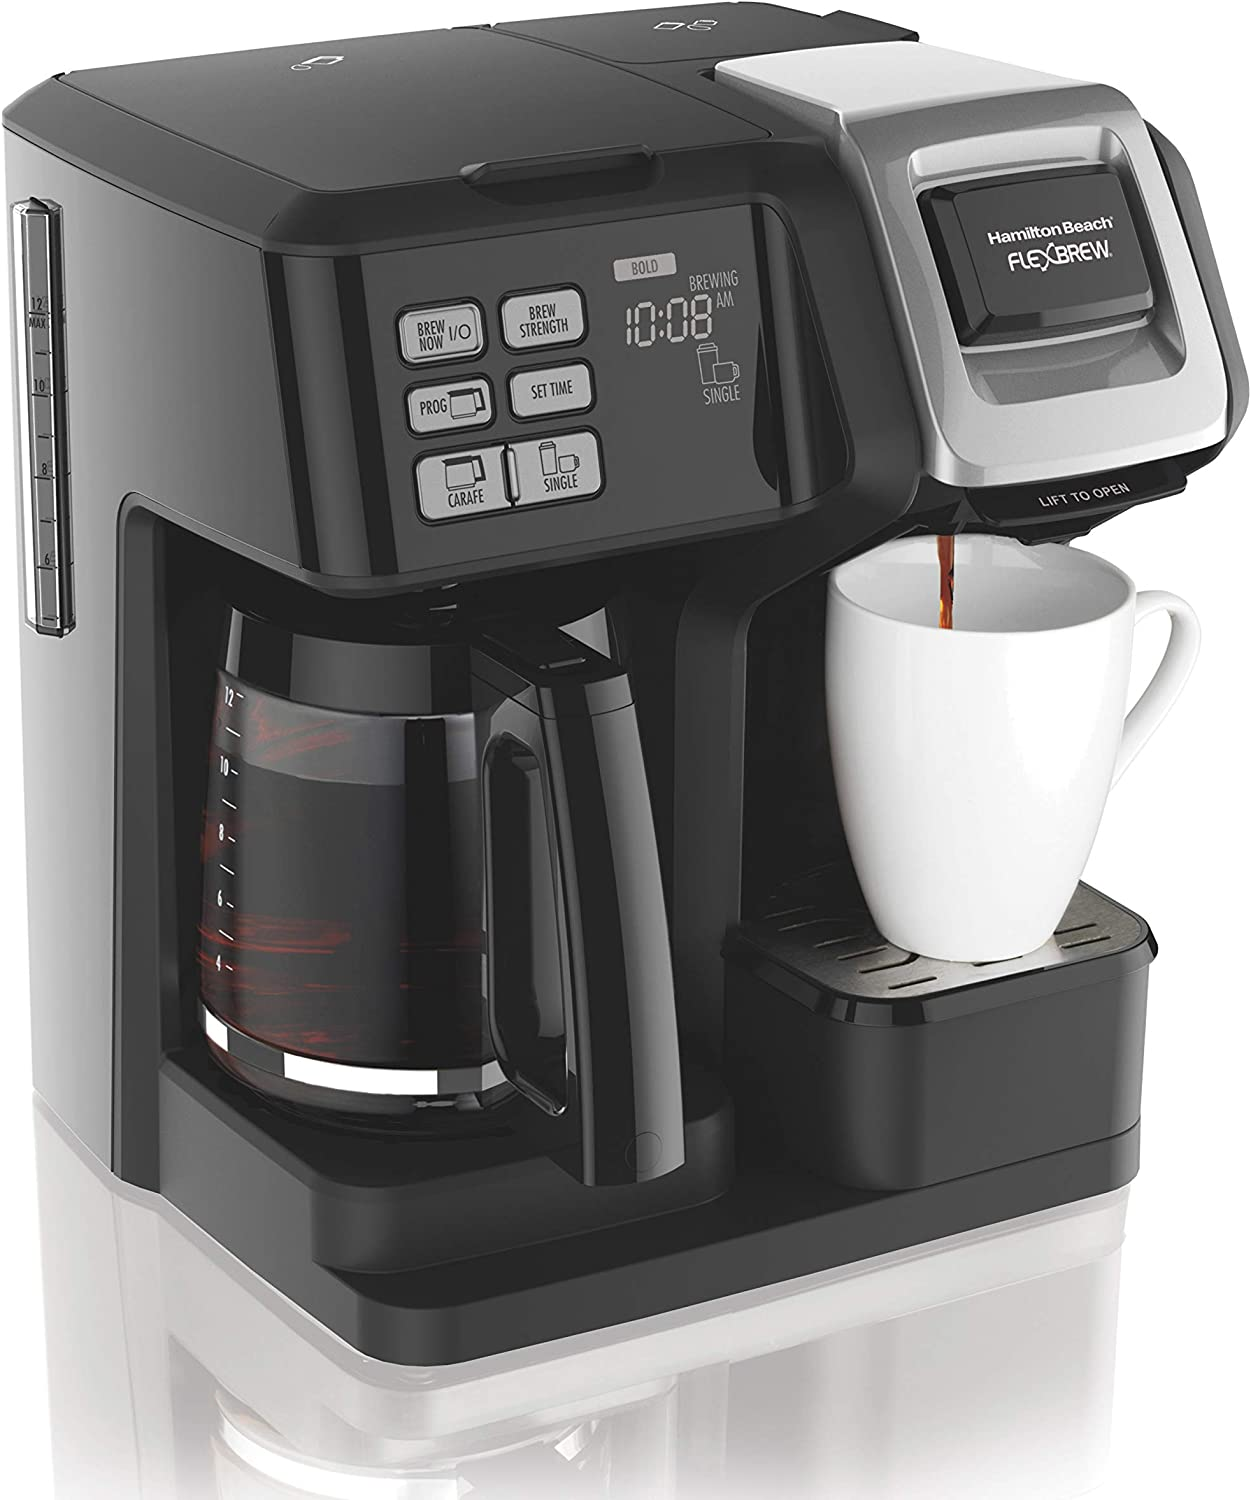 hamilton beach flexbrew single serve & full pot coffee maker